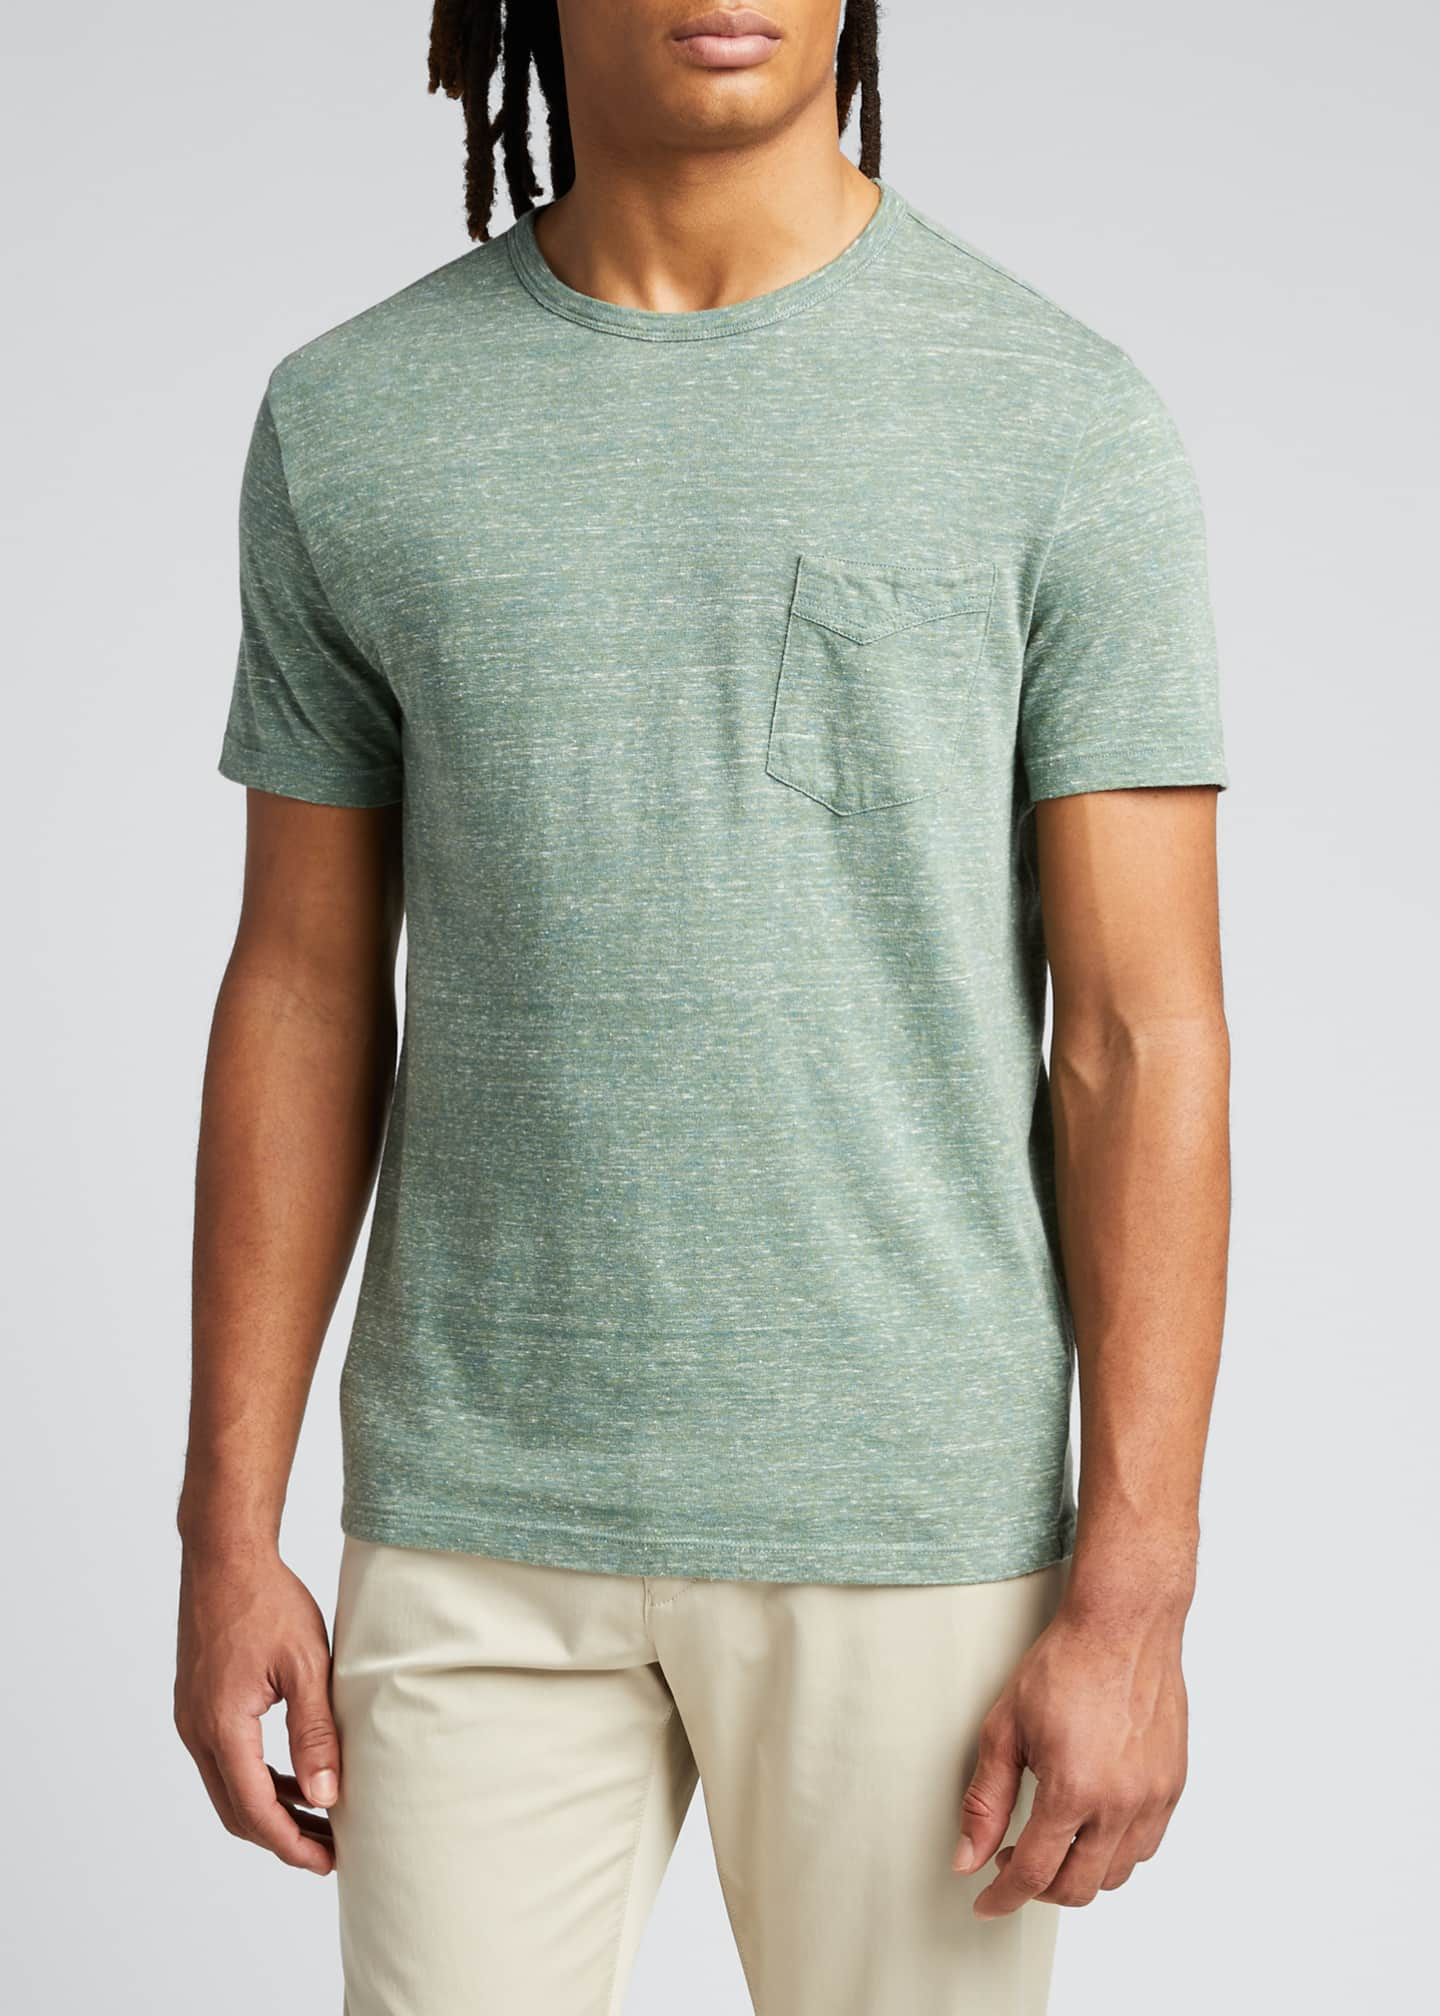 Image 3 of 5: Men's Light Green Cotton Jersey Slub T-Shirt